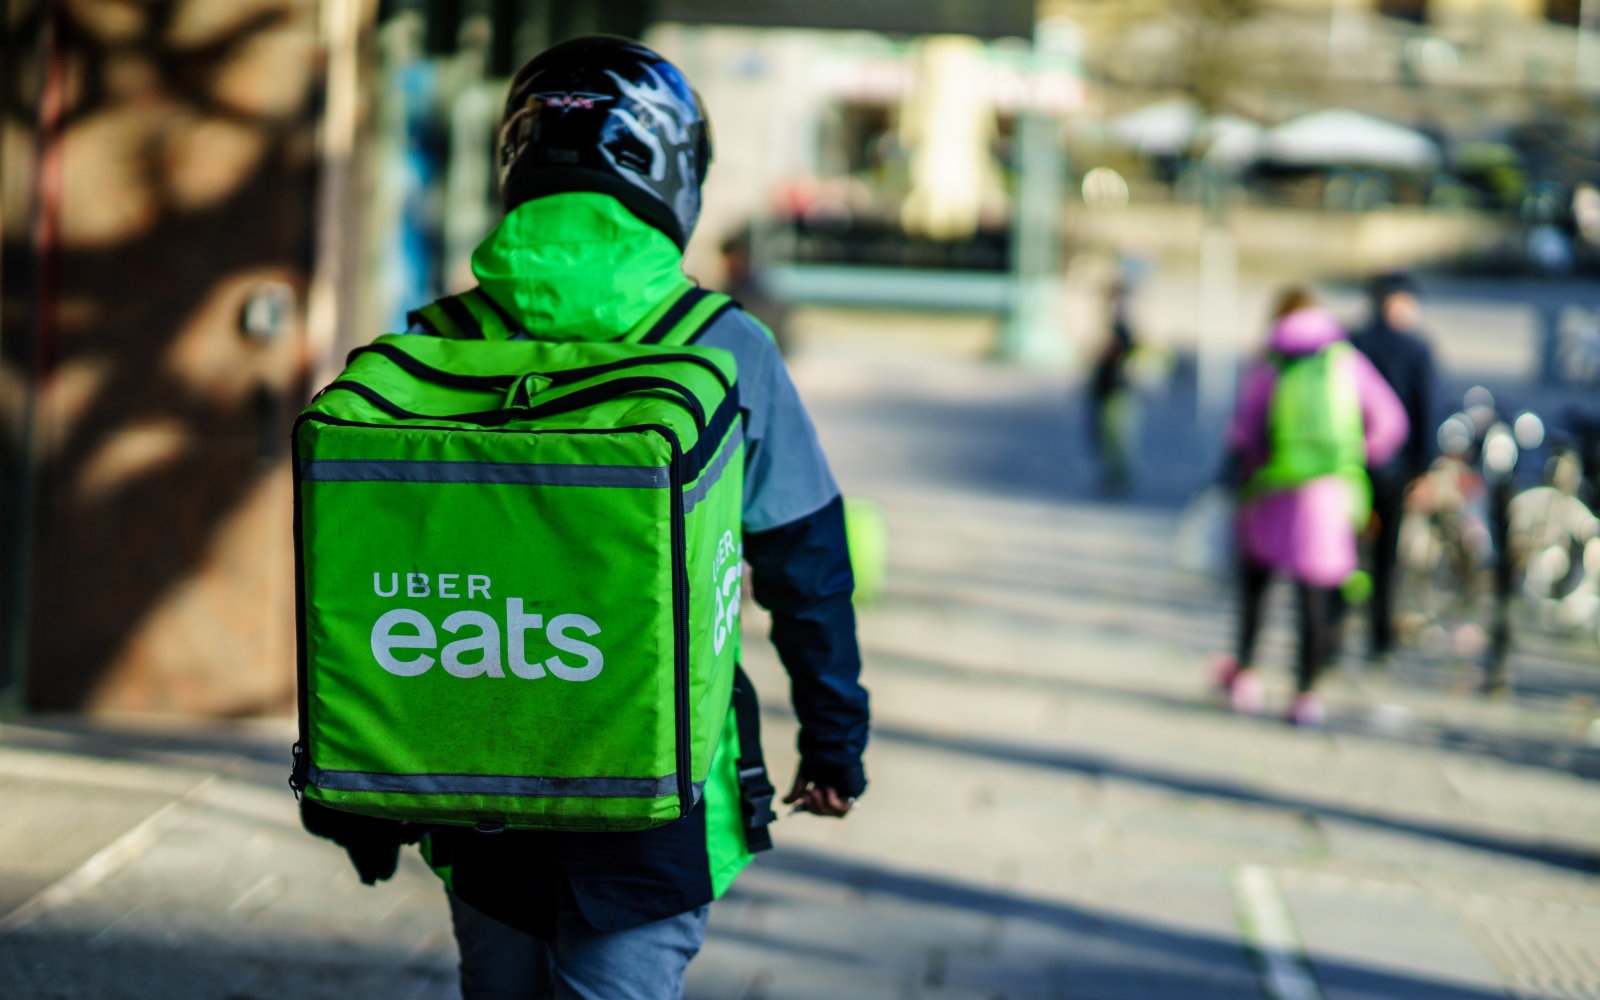 Uber eats delivery person carrying food to people who order by online app